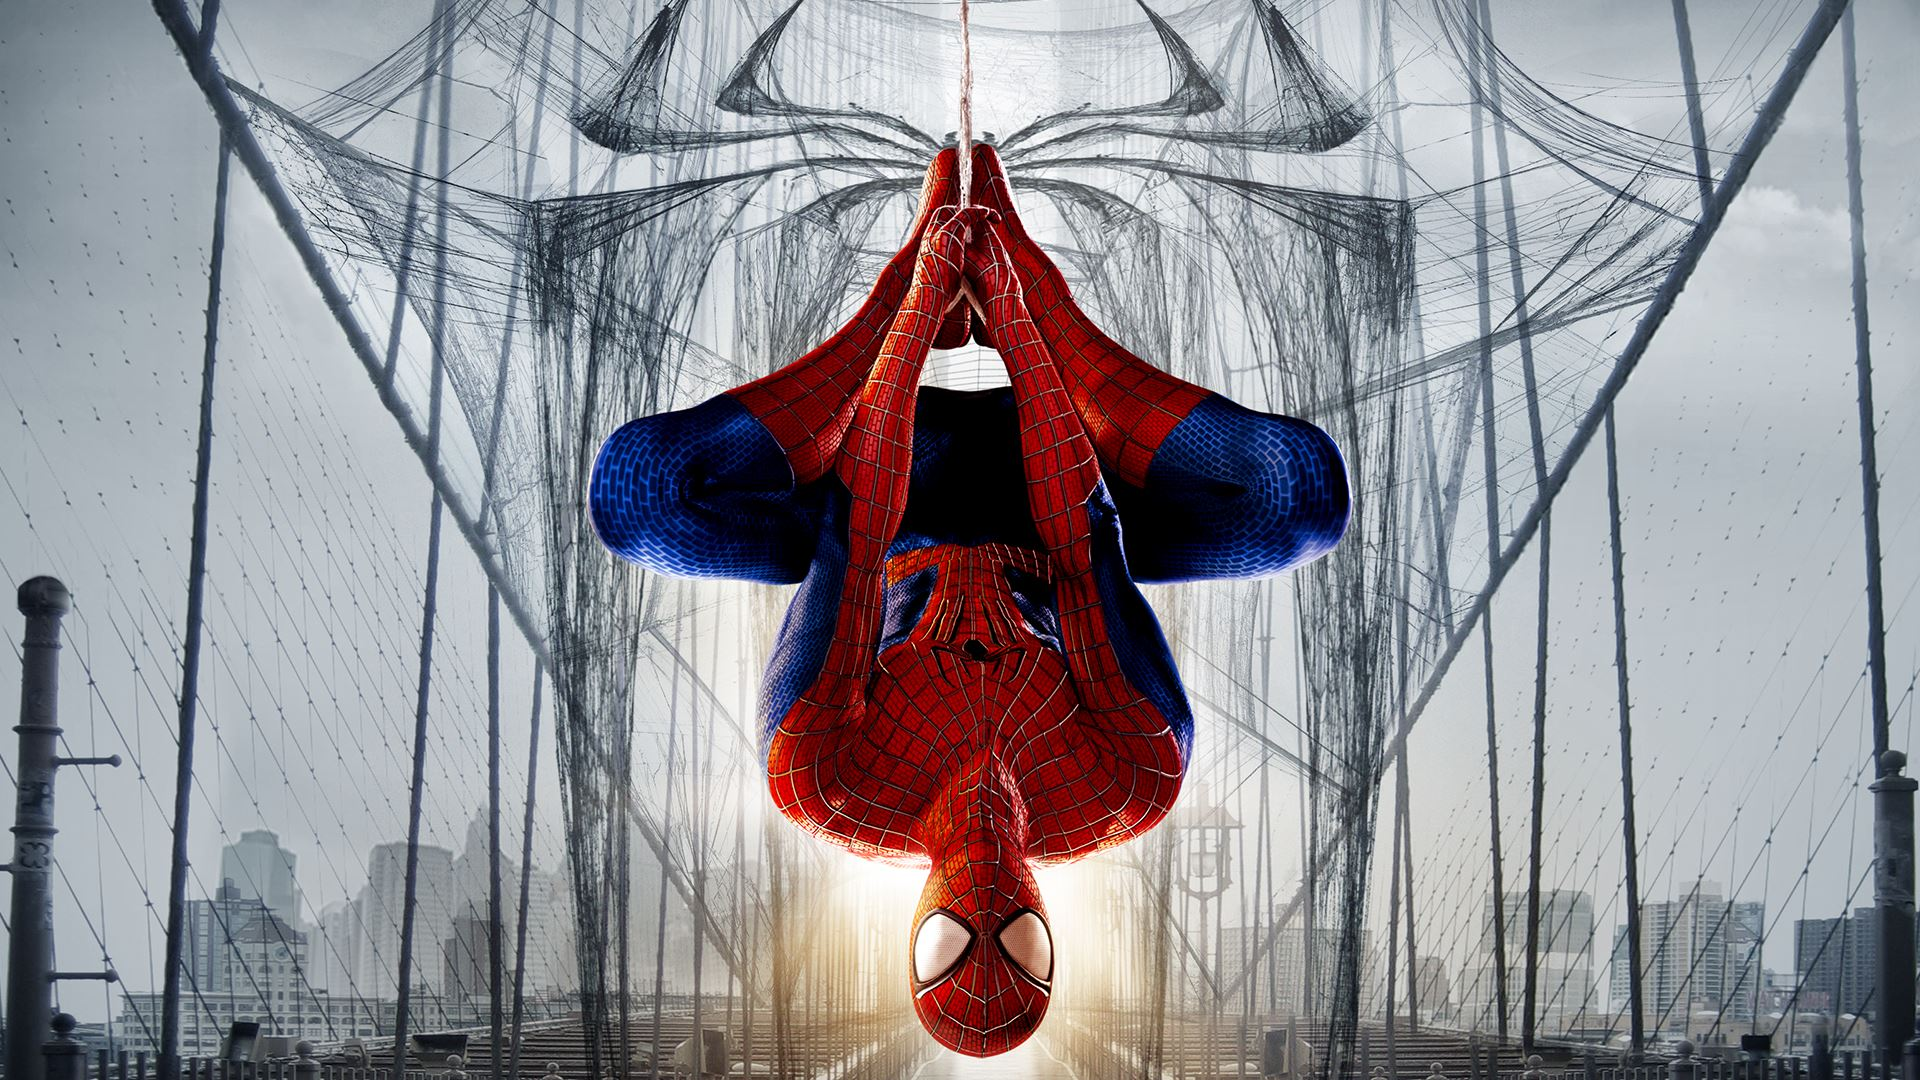 marvel sony announced spider man imax release in 2017